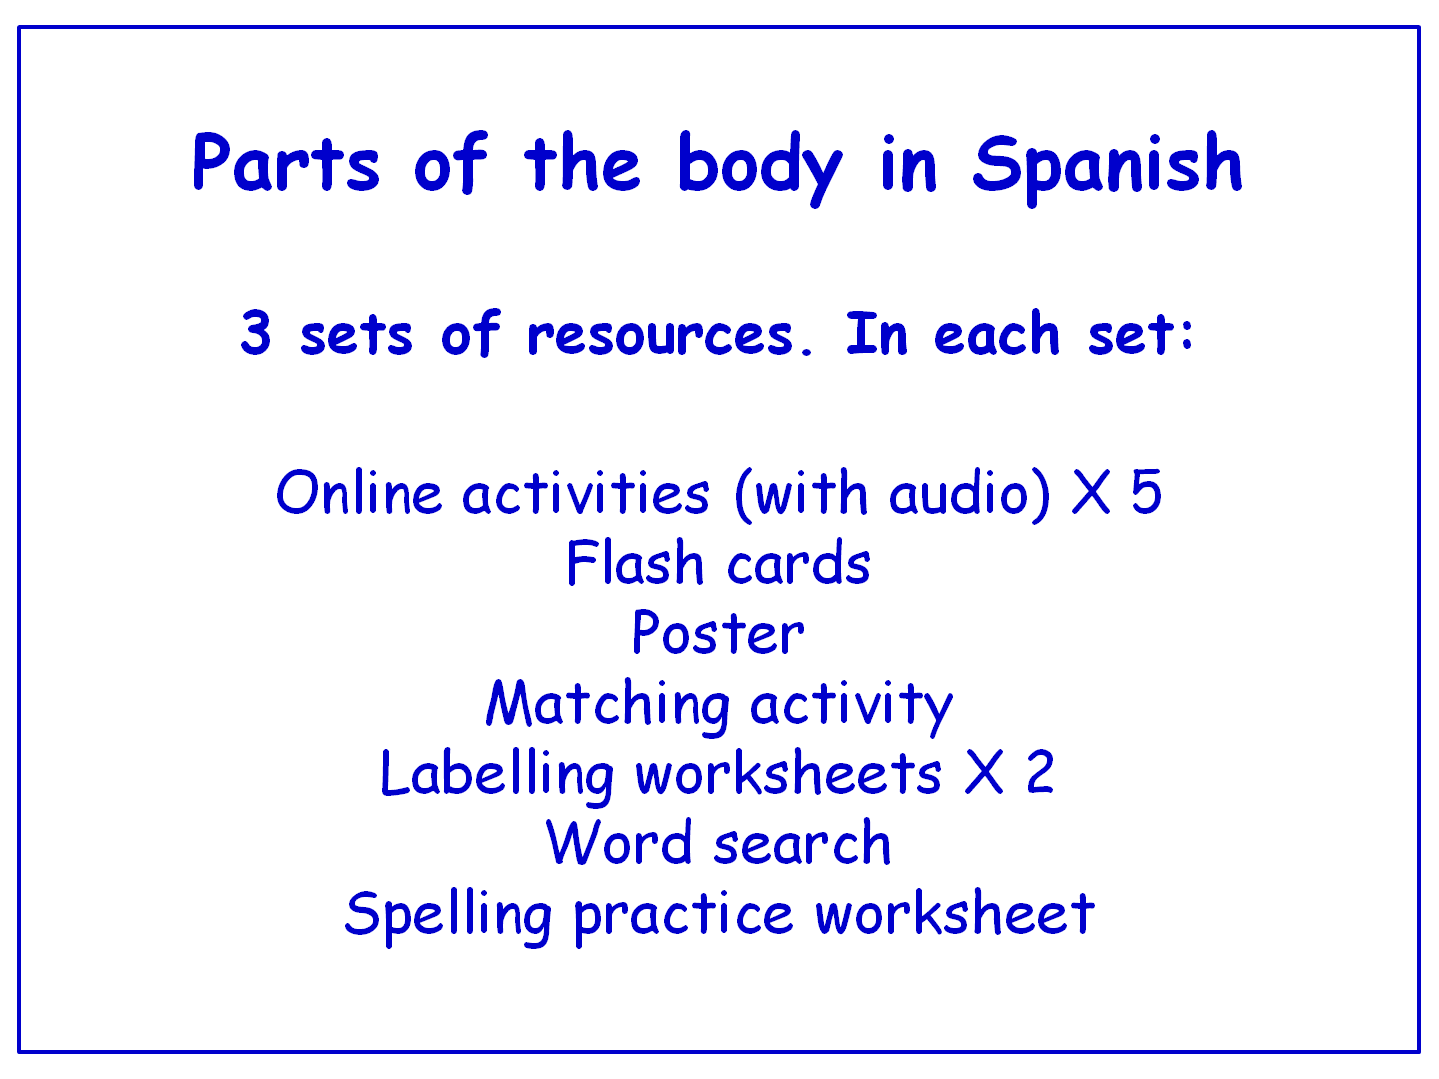 Parts of the Body in Spanish  Worksheets, Games, Activities and Flash Cards (with audio) Bundle (3 sets)